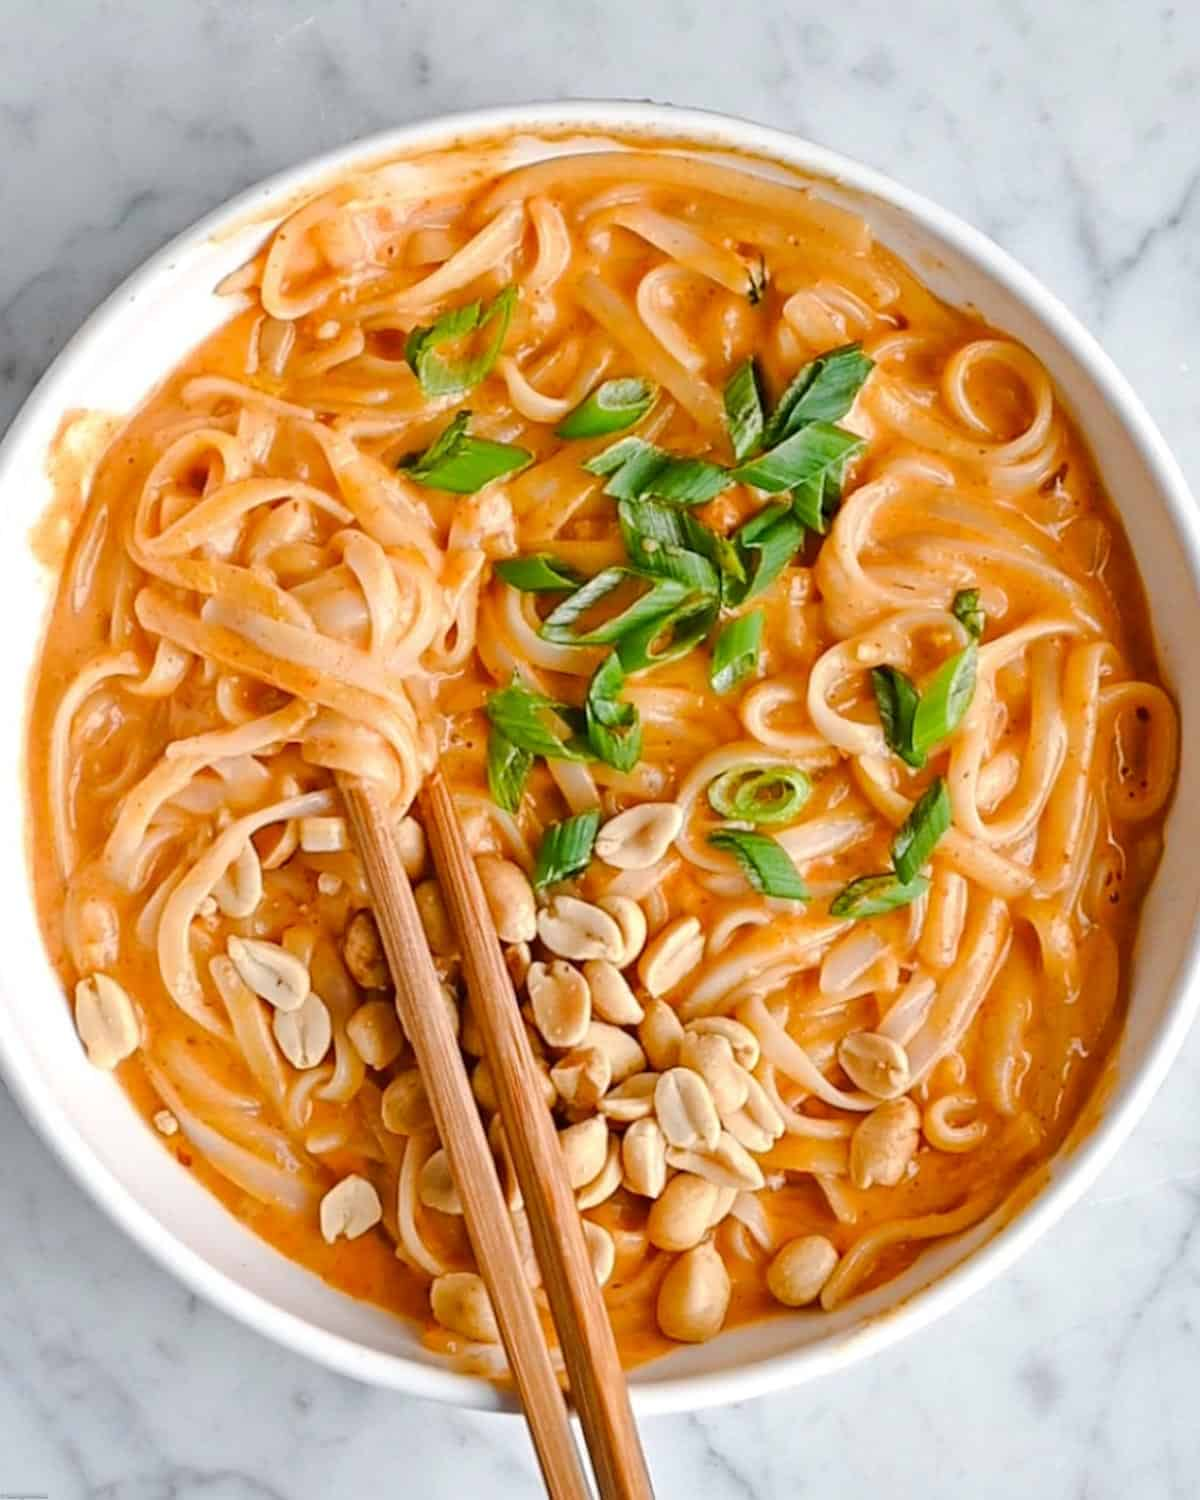 Thai Red Curry Noodles with chopped peanuts and scallions.